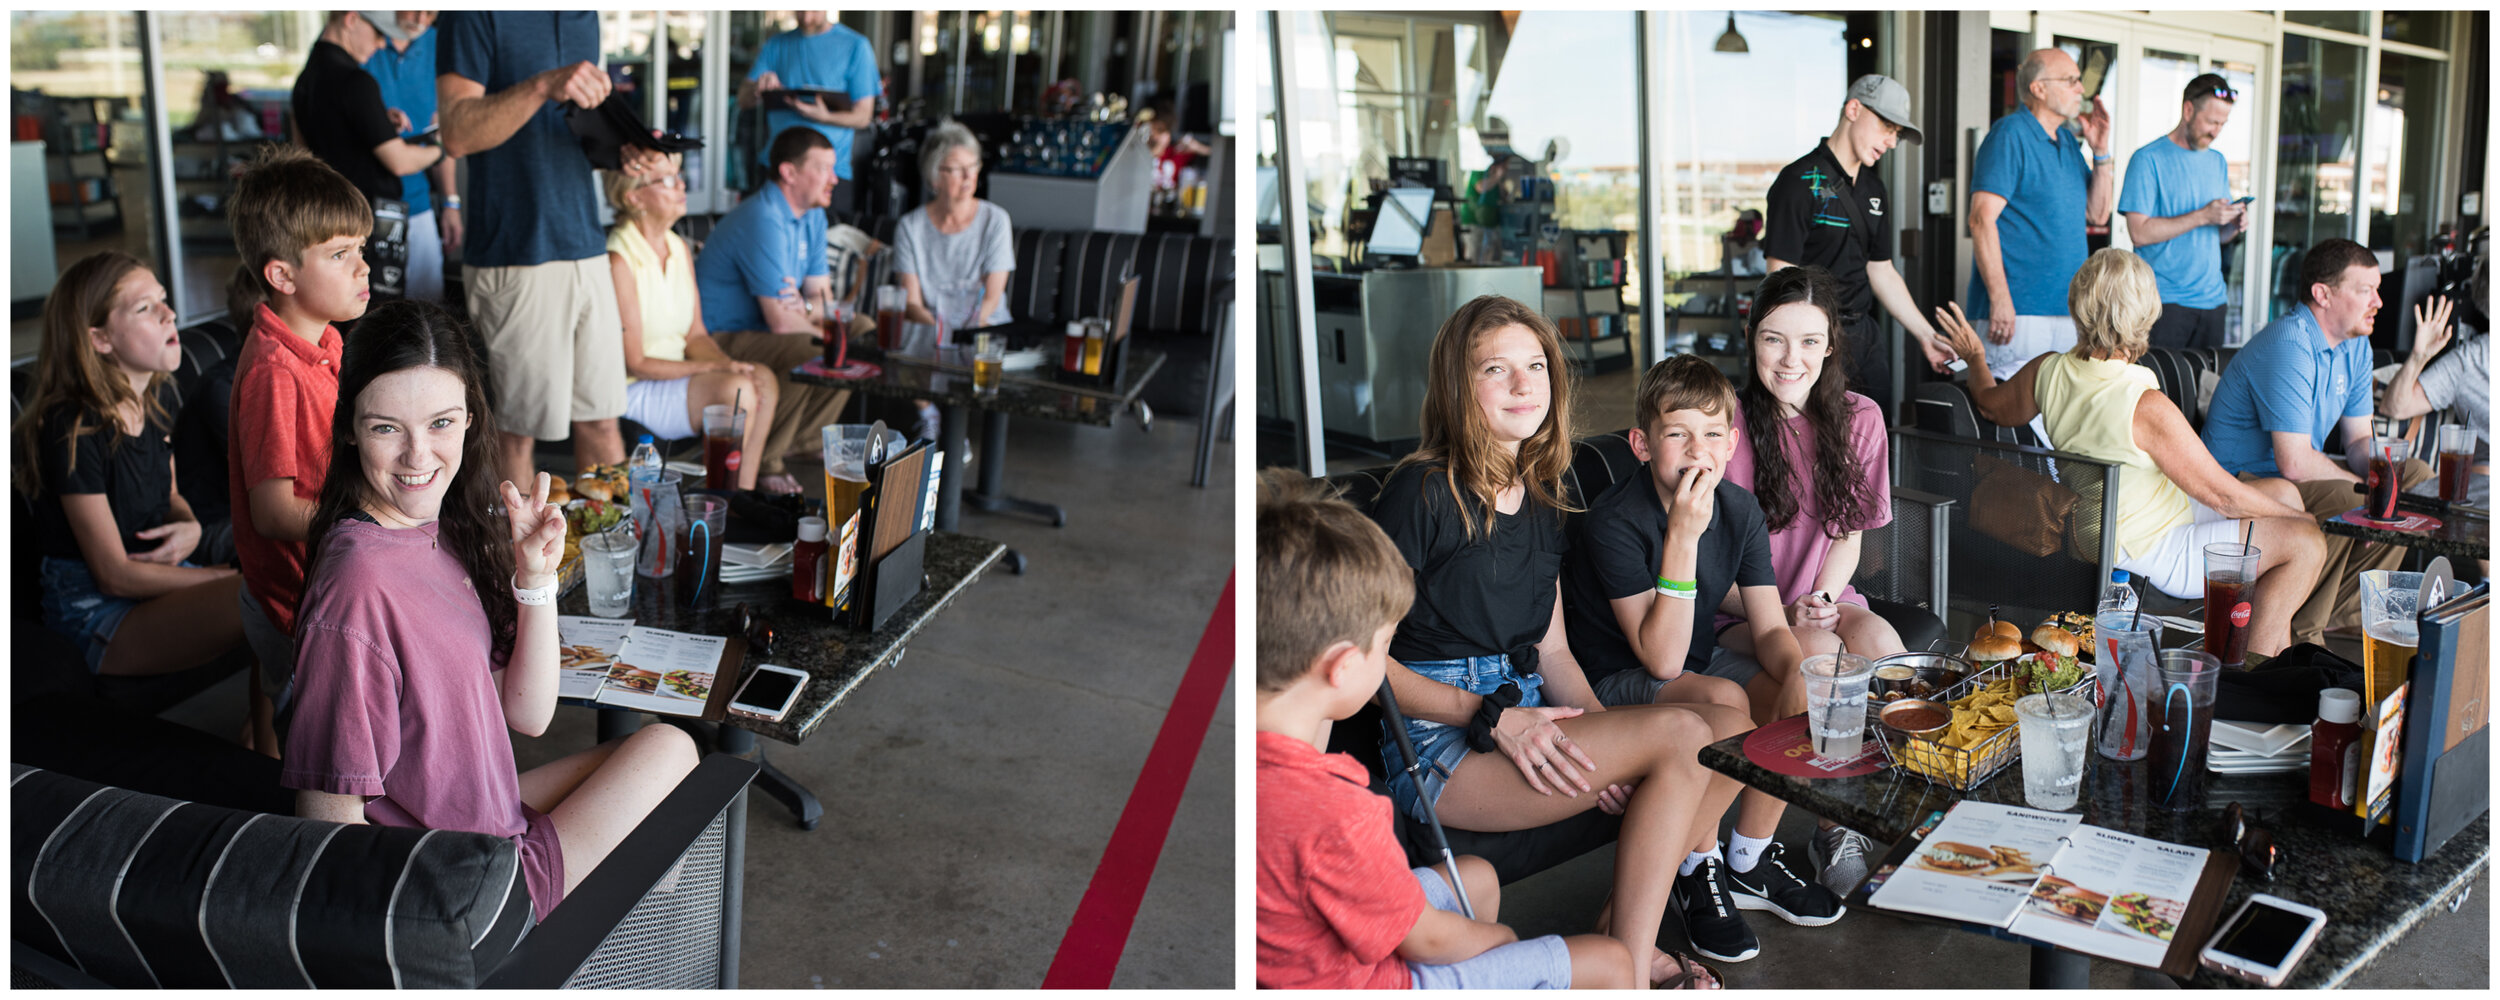 For Michael's 11th birthday, he wanted to go to Top Golf which made everyone happy.